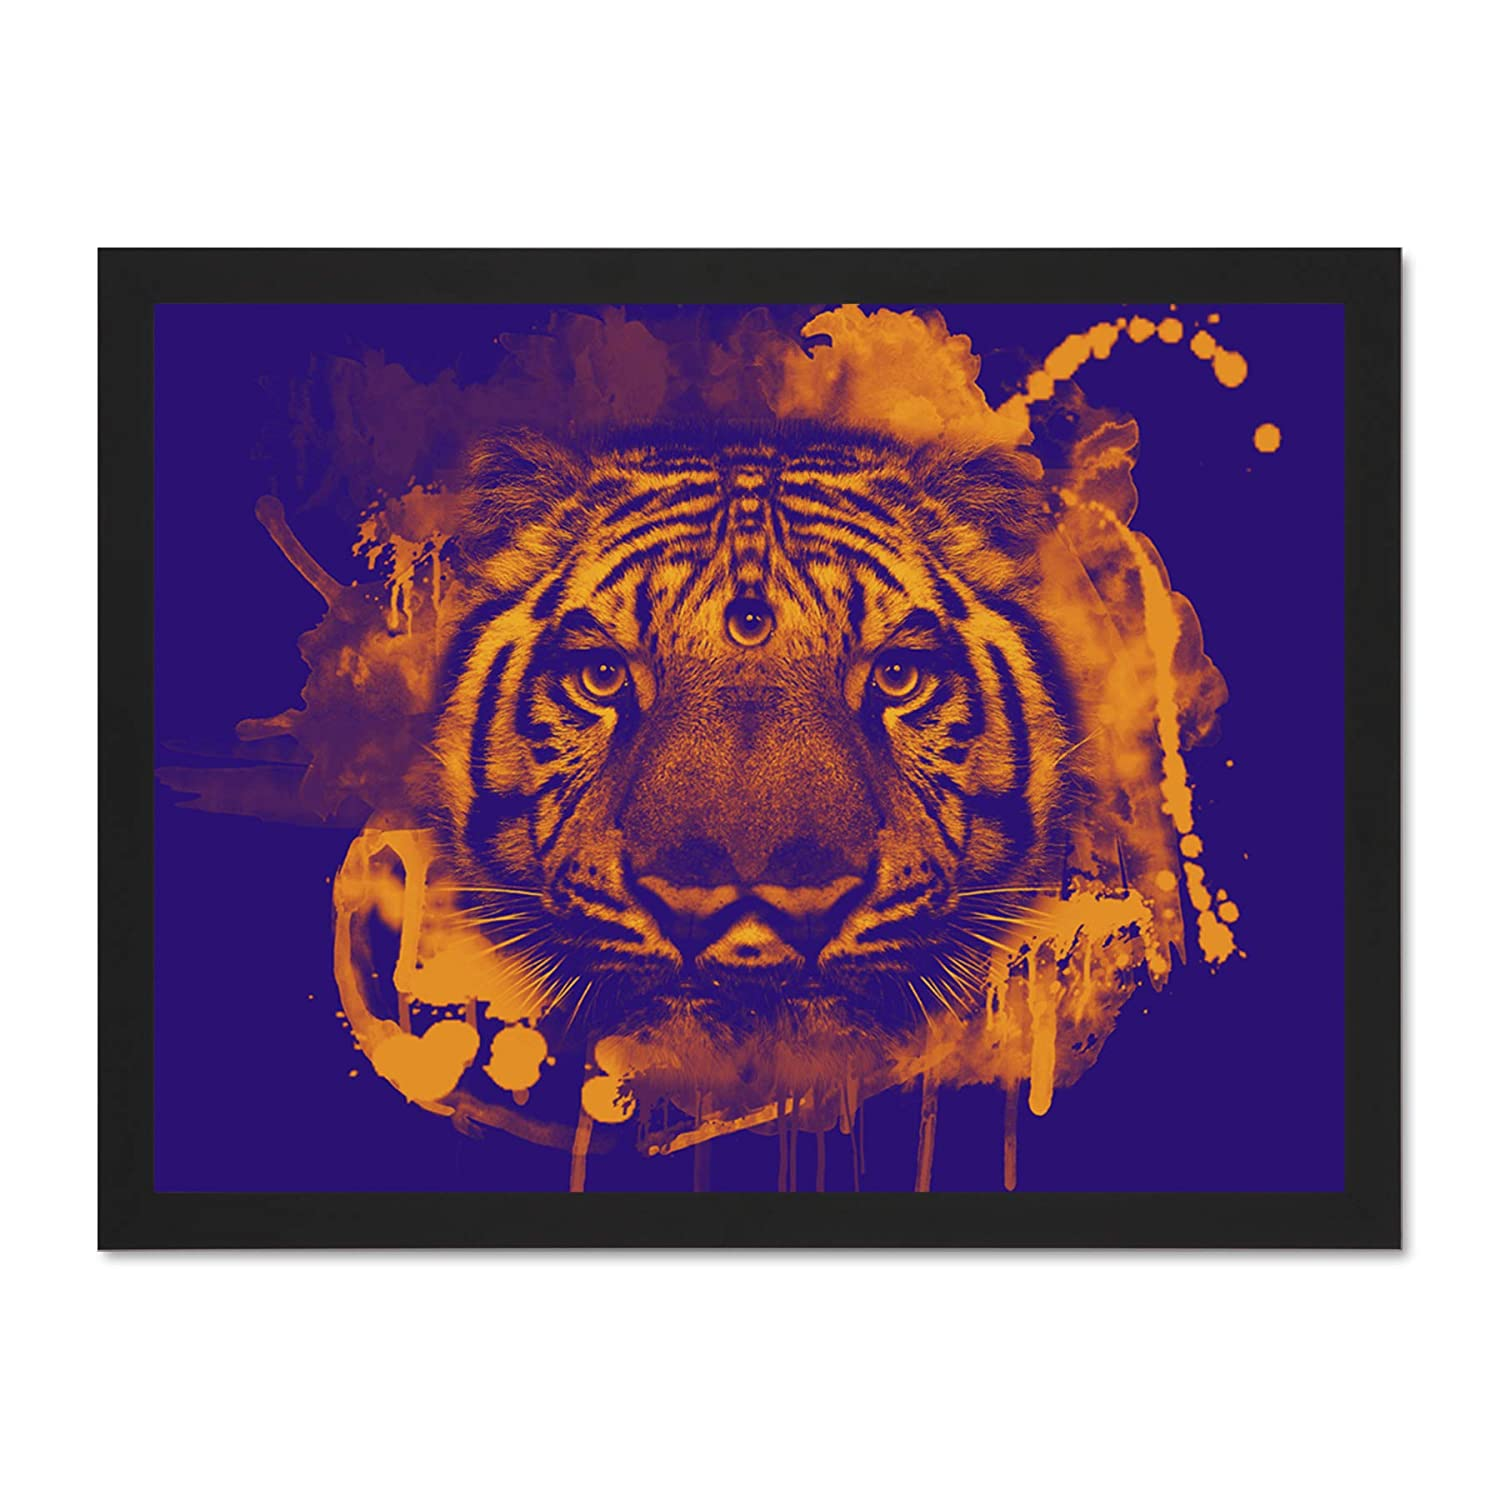 Amazon com doppelganger33 ltd painting trippy tiger eyes three blue orange surreal large framed art print poster wall decor 18x24 inch supplied ready to